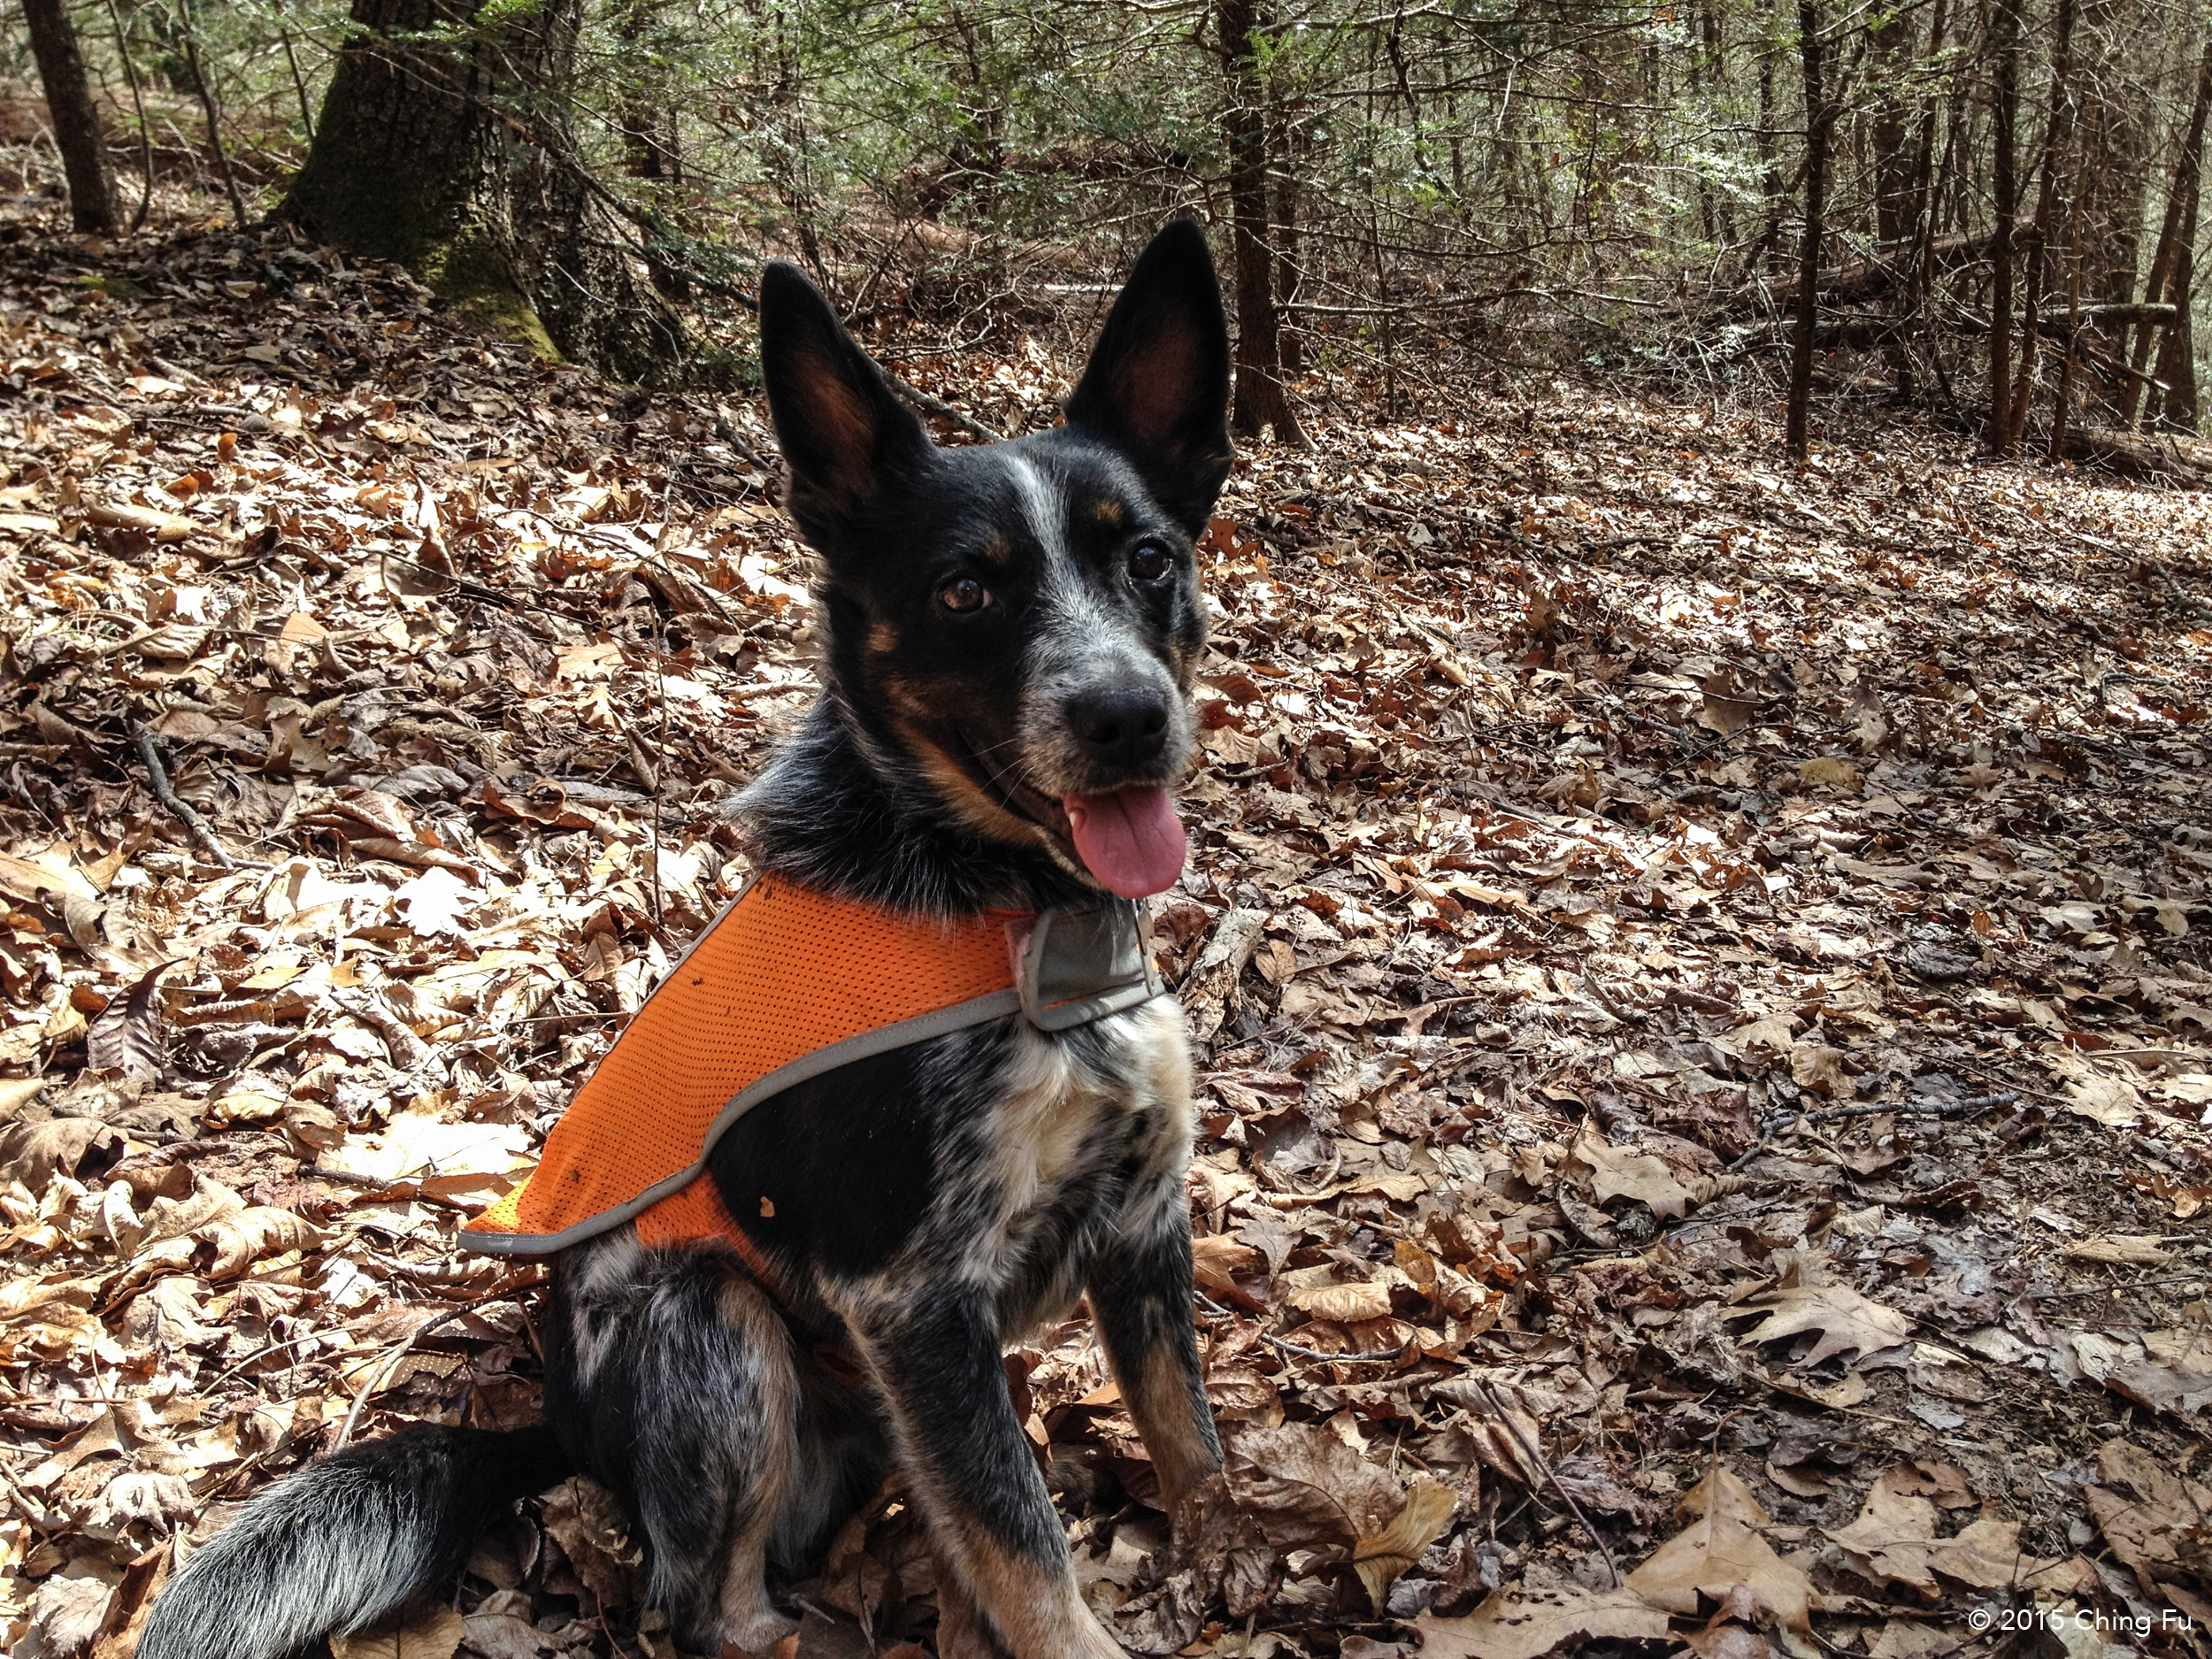 Tyki wearing his safety vest.